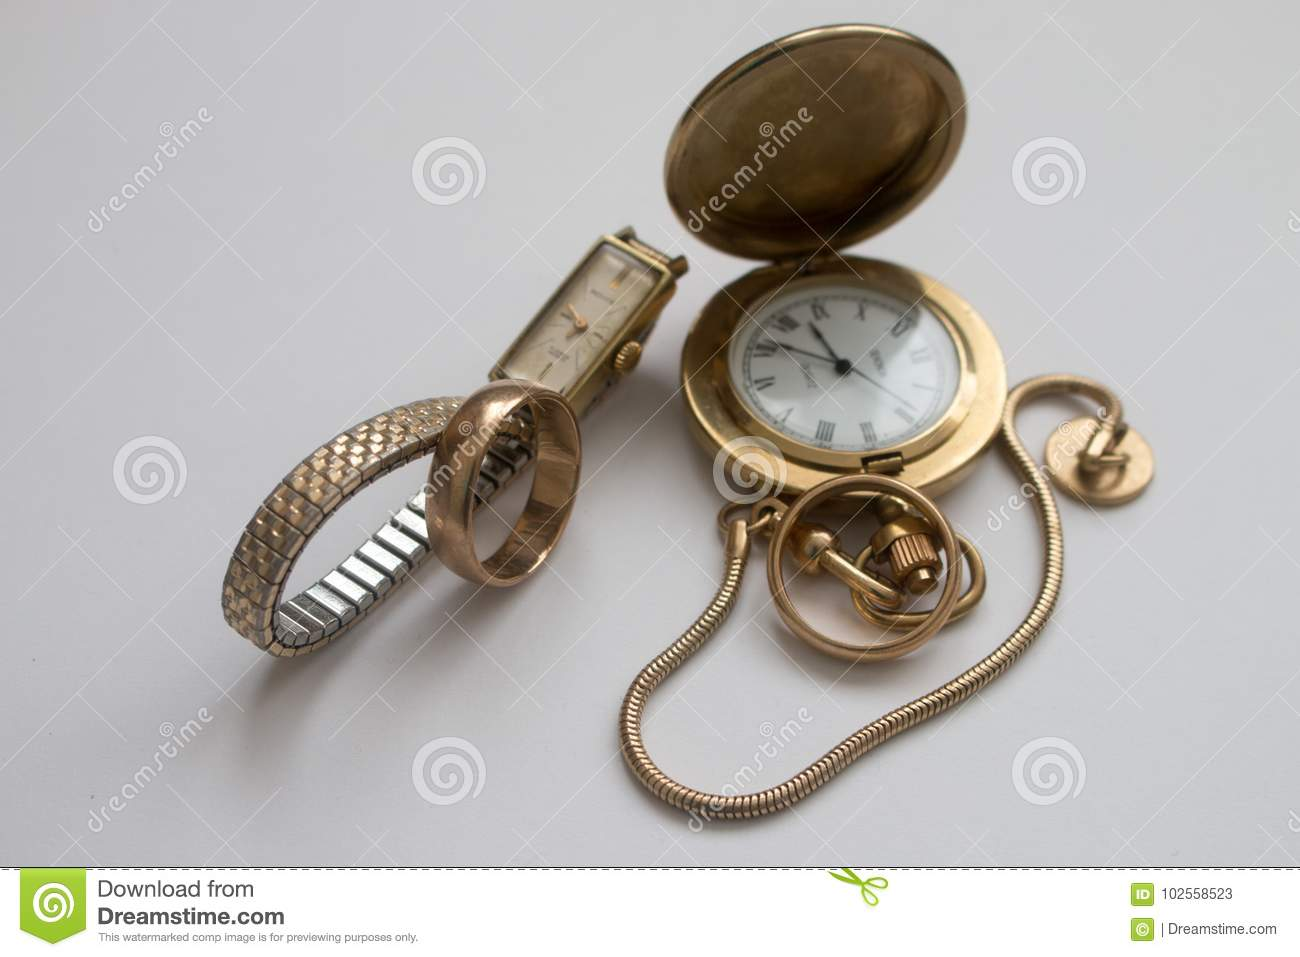 kicked kicking butt watch time is fashioned old savings watches fashion daylight my